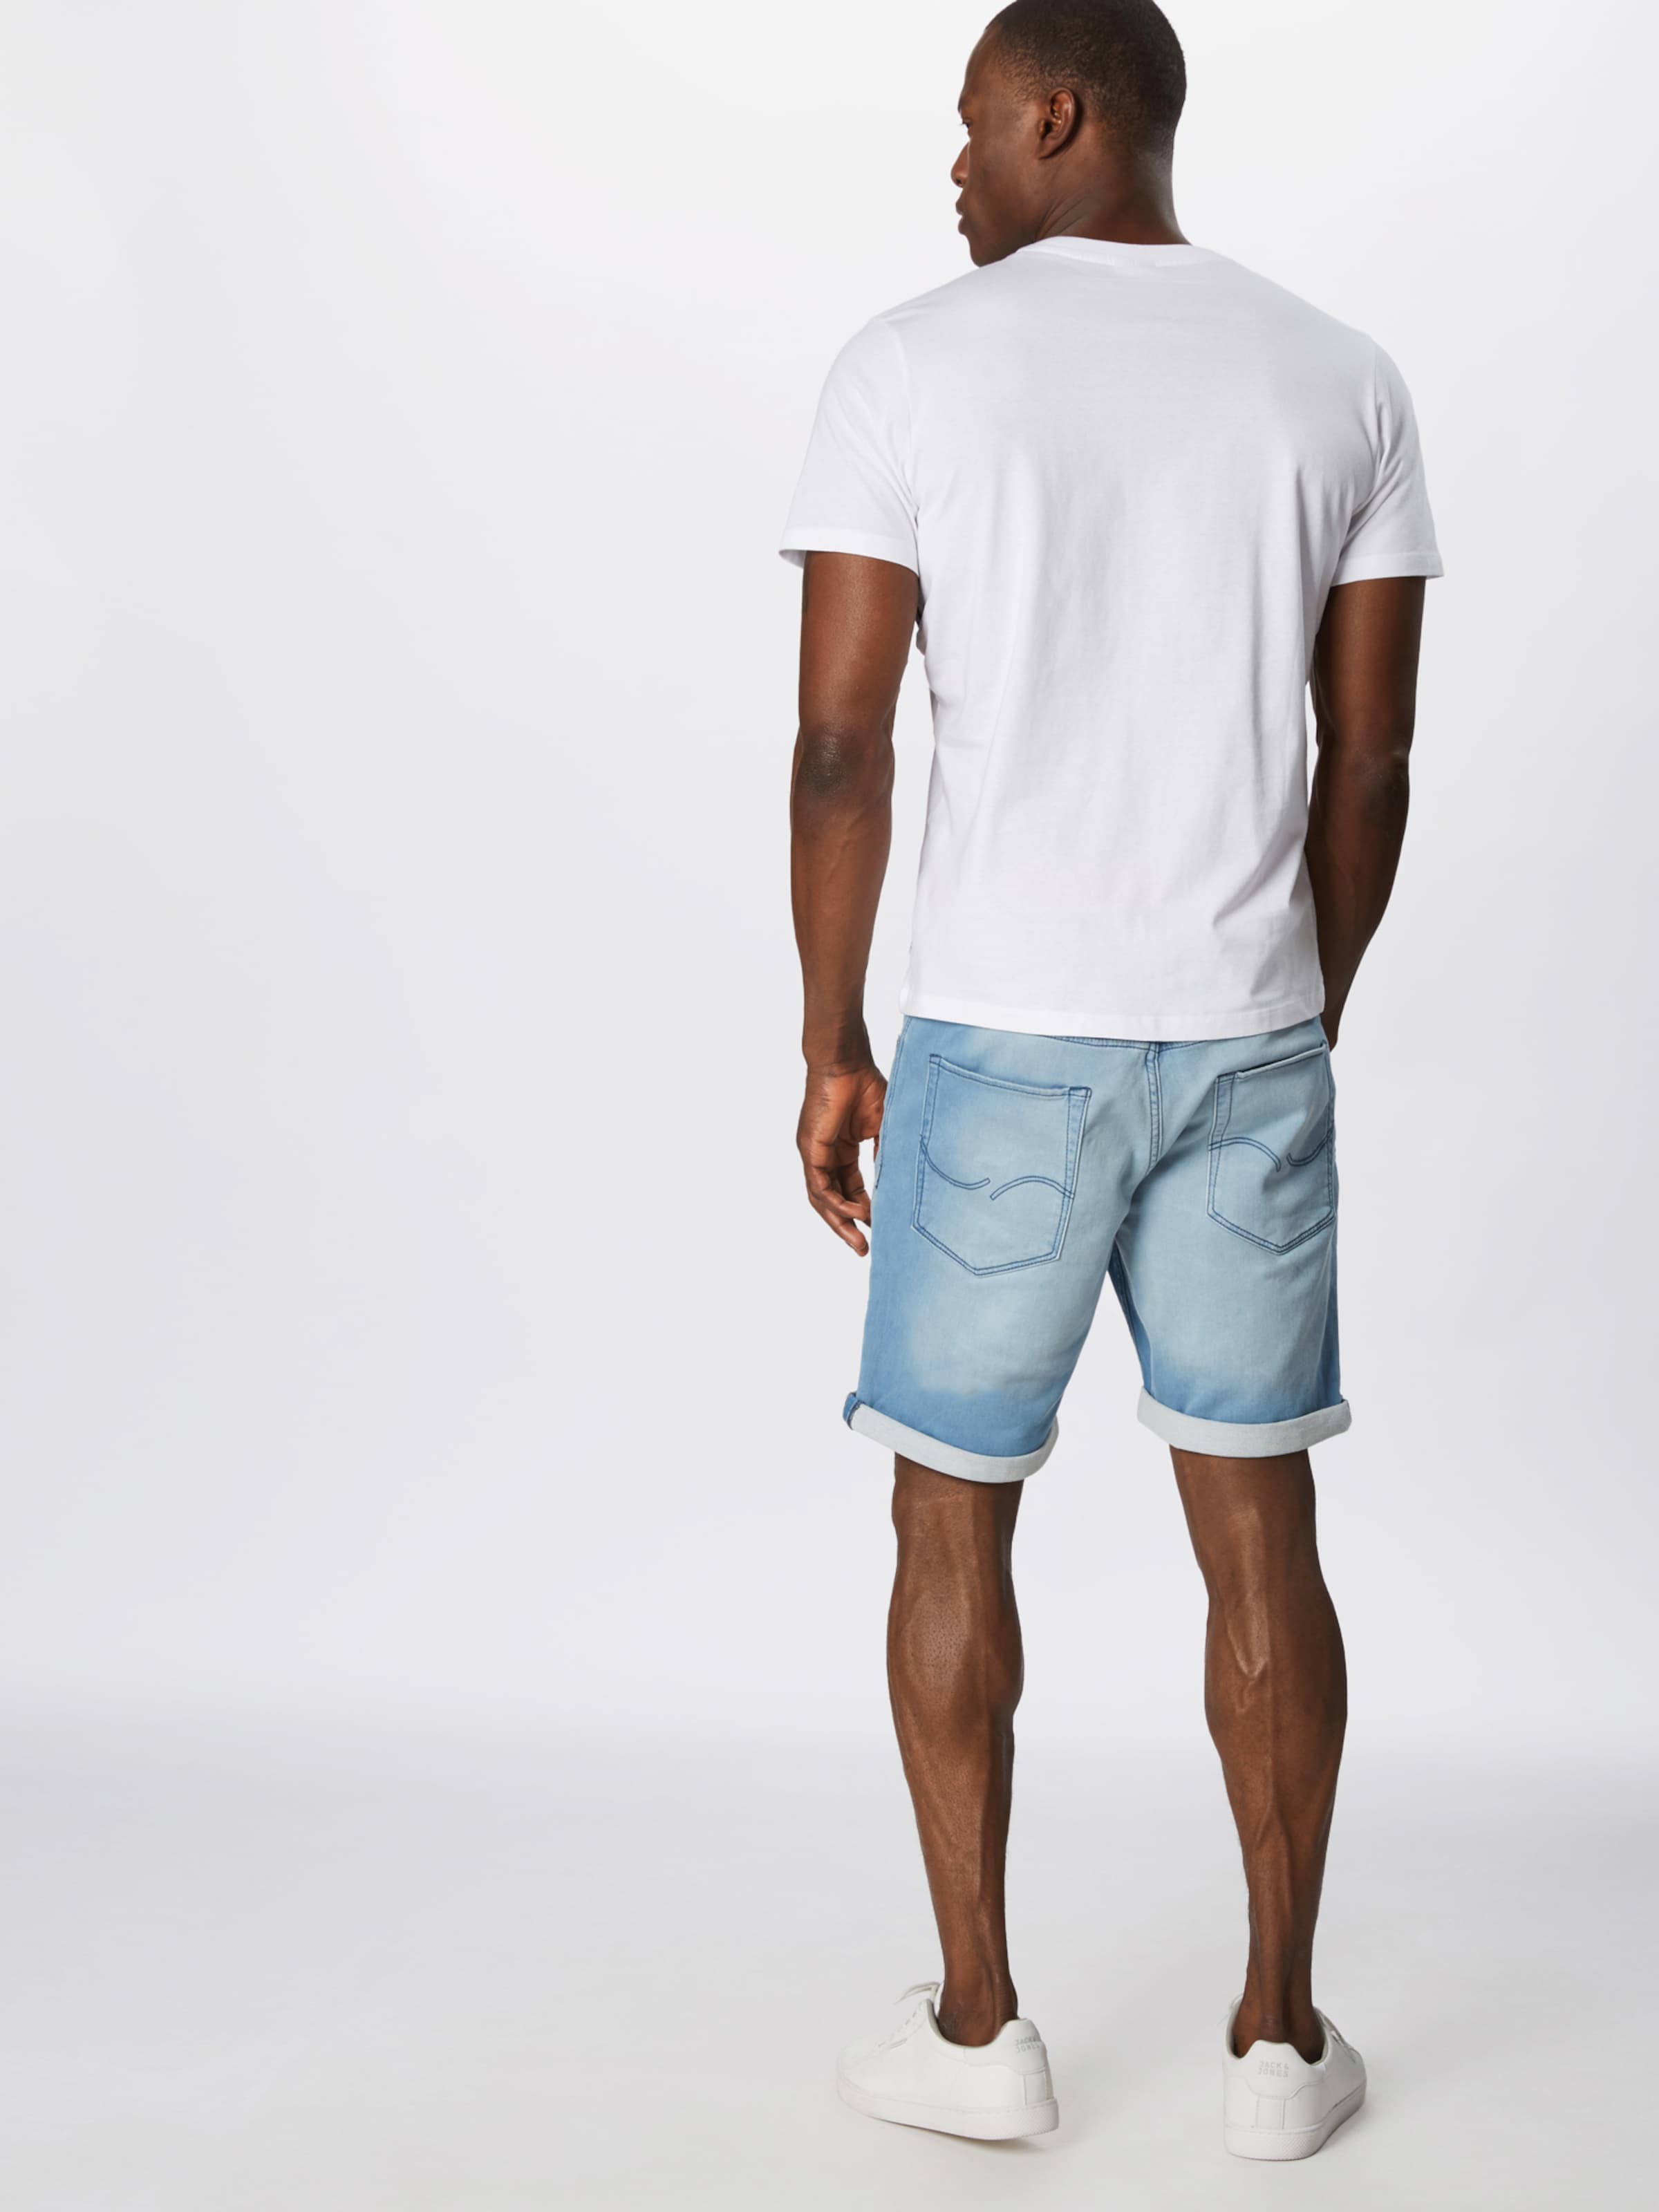 Jackamp; In Jones Blue Denim Shorts ZTPiOkXu